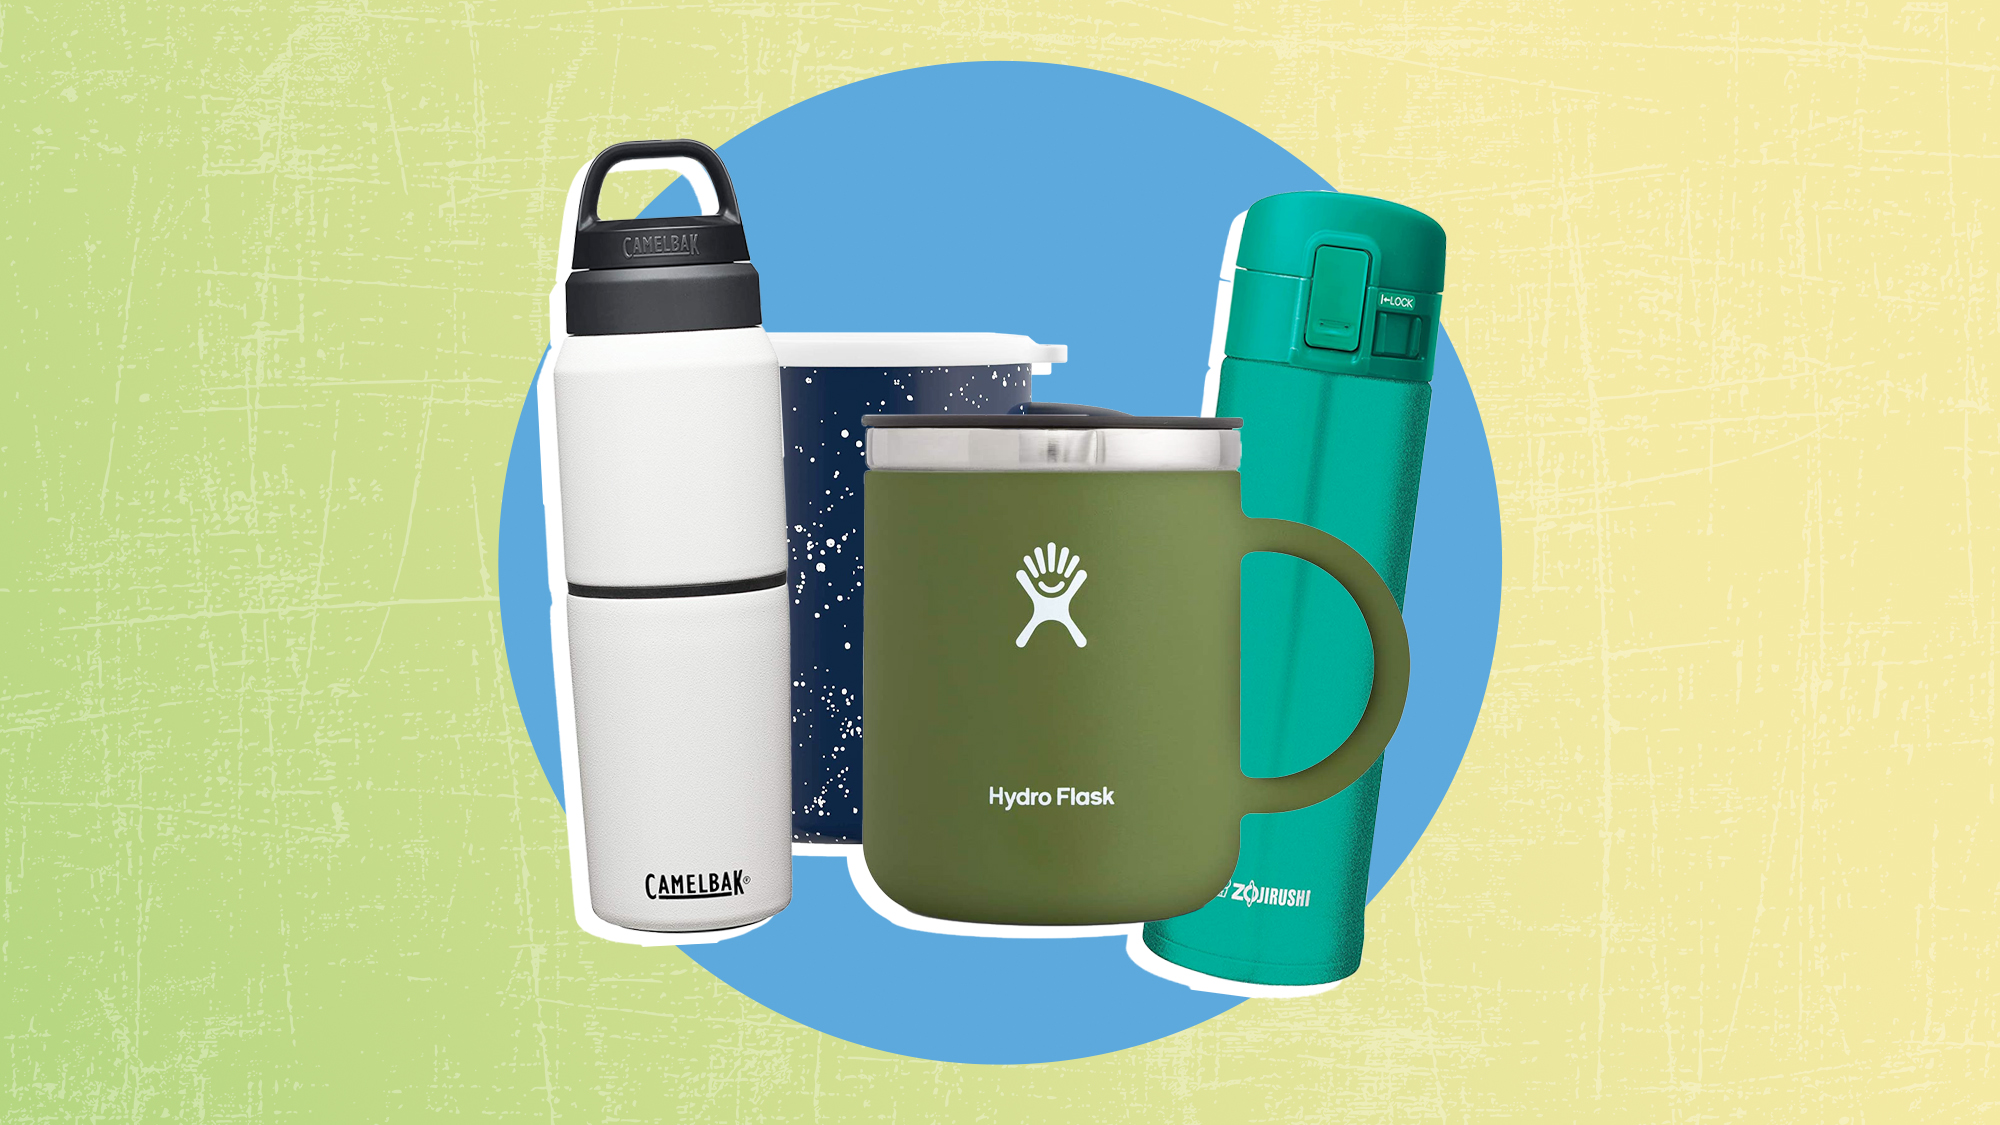 A selection of 4 travel coffee mugs on a designed background